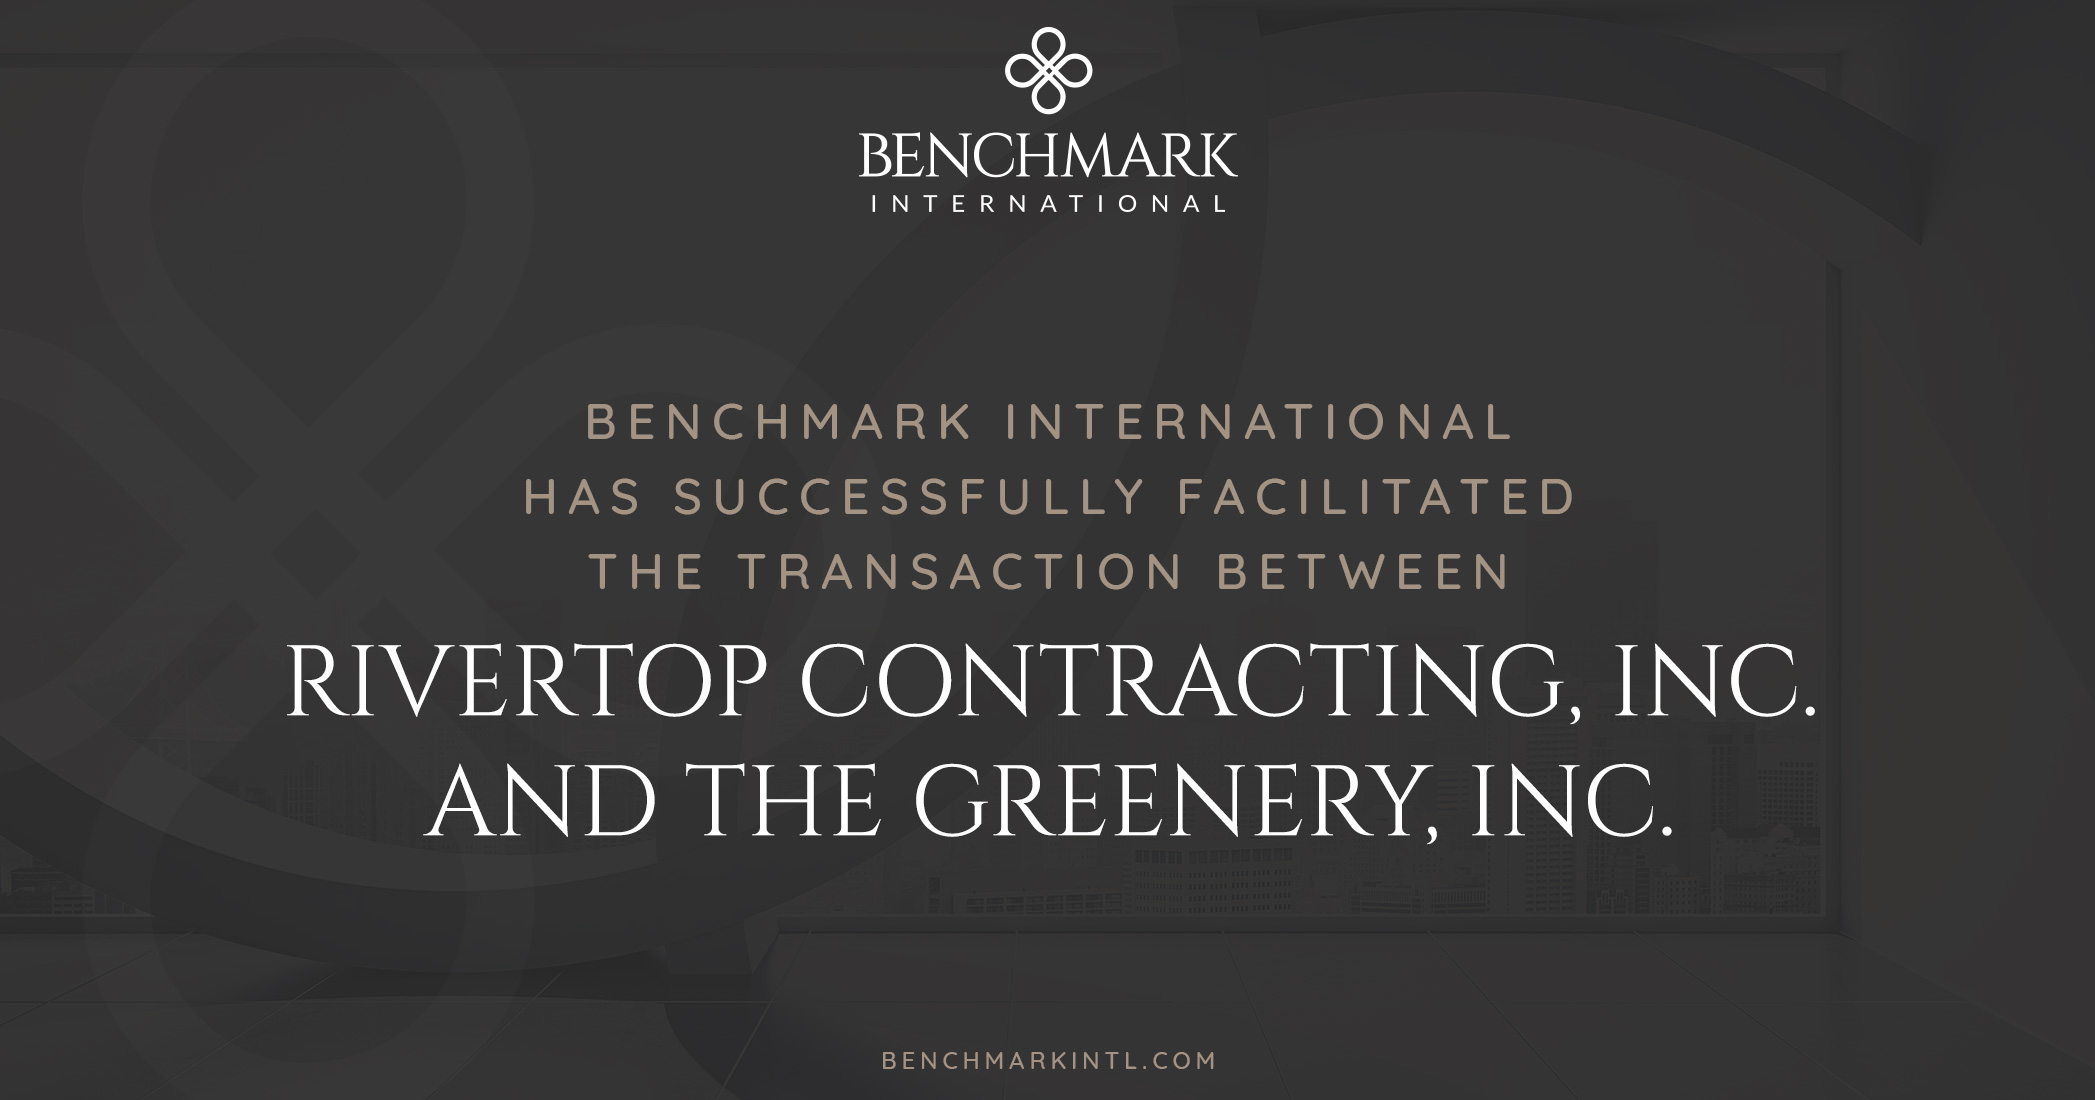 Benchmark International Has Successfully Facilitated the Transaction Between Rivertop Contracting, Inc. and The Greenery, Inc.